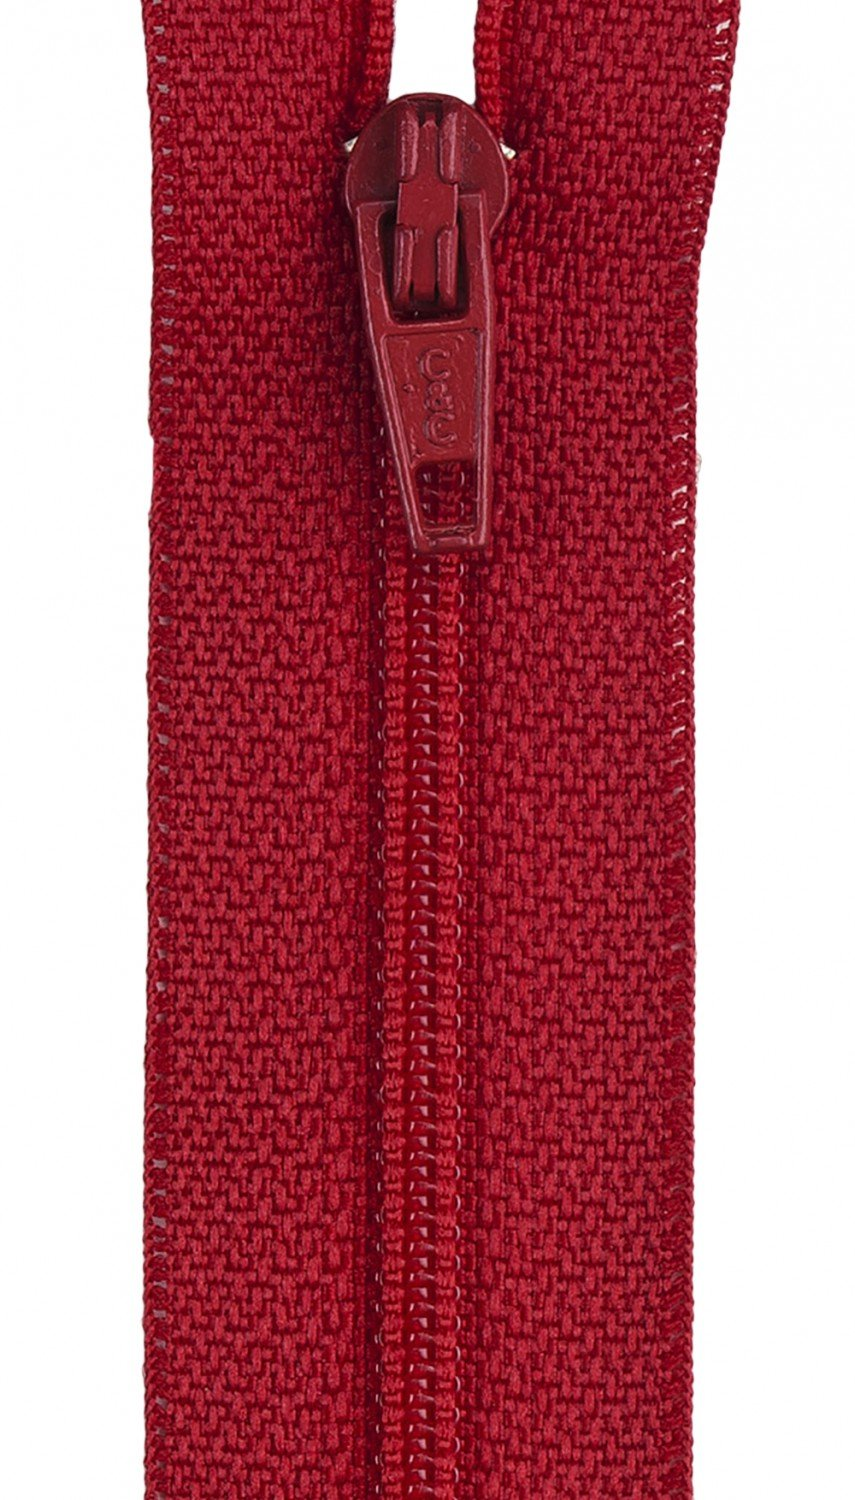 Zipper - 12 All Purpose - Red